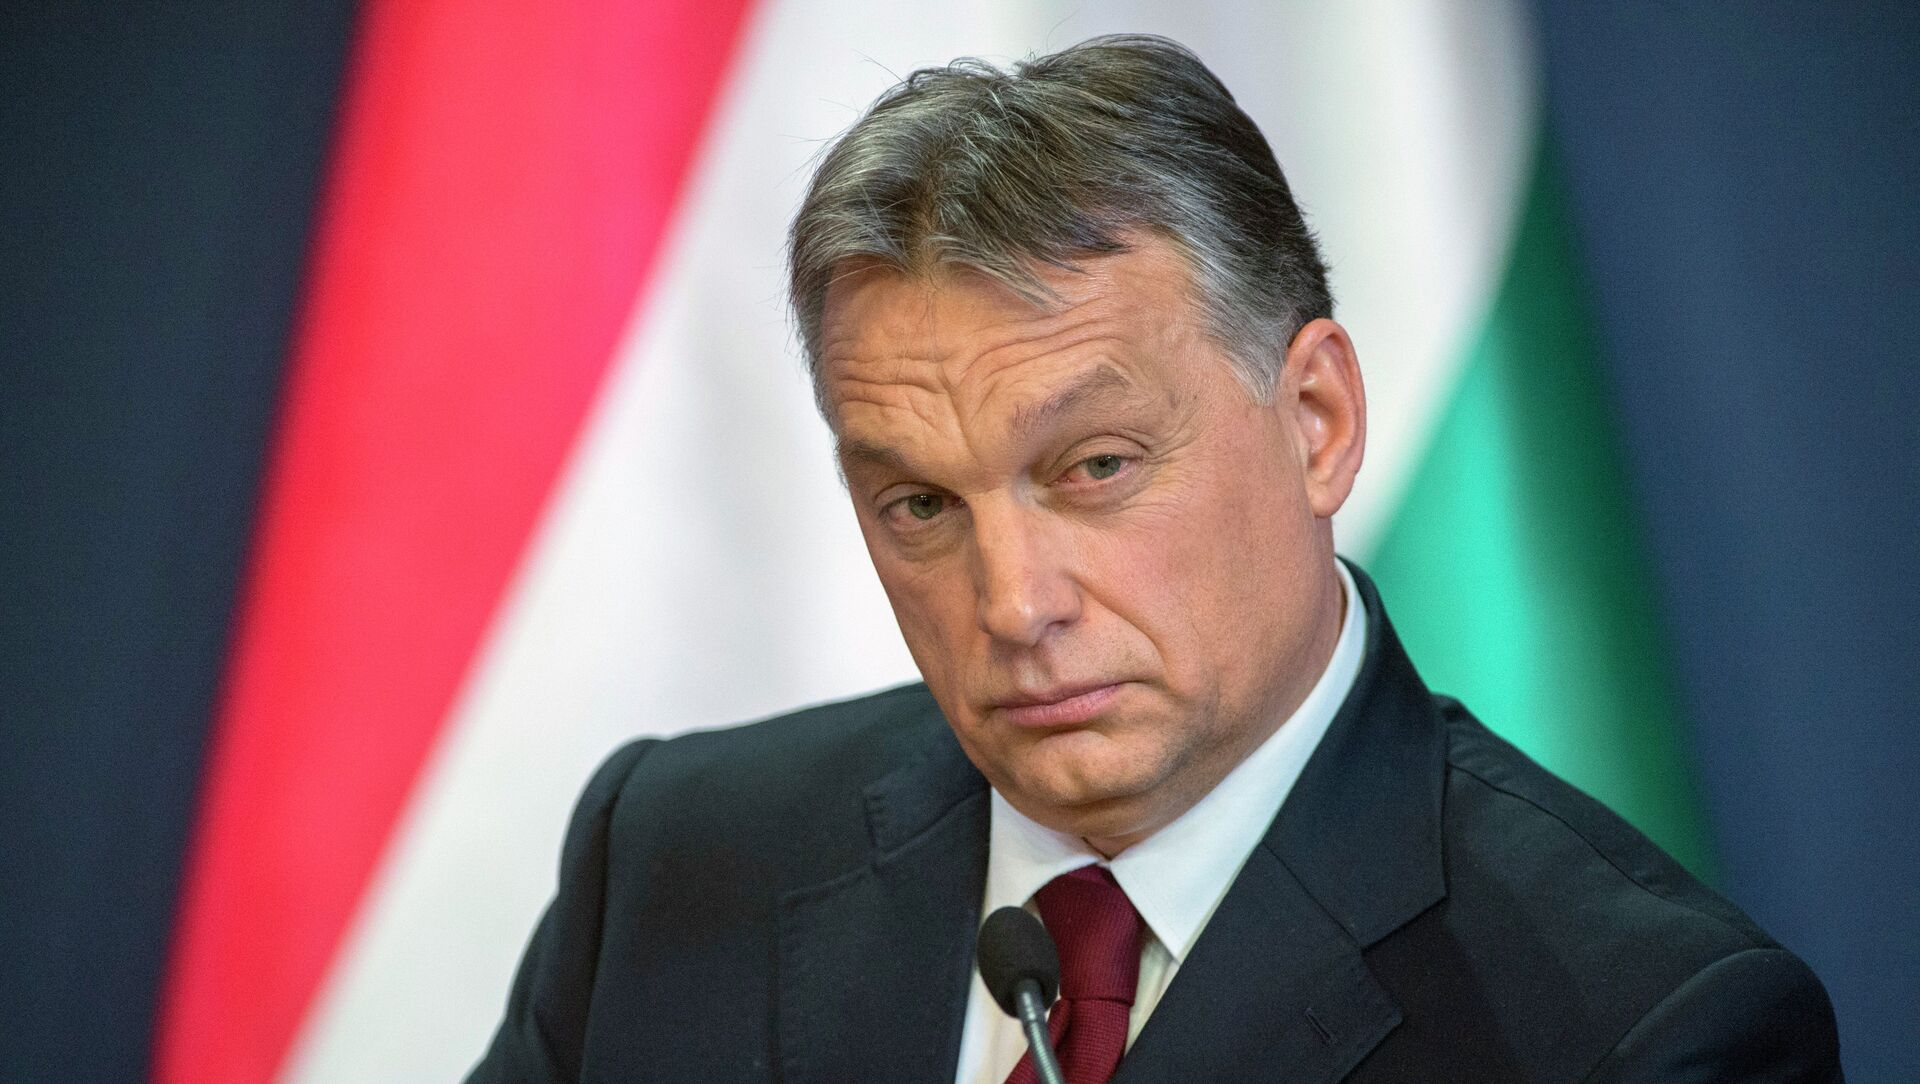 Hungarian Prime Minister Viktor Orban during press conference in the Parliament building in Budapest - Sputnik Italia, 1920, 25.02.2021